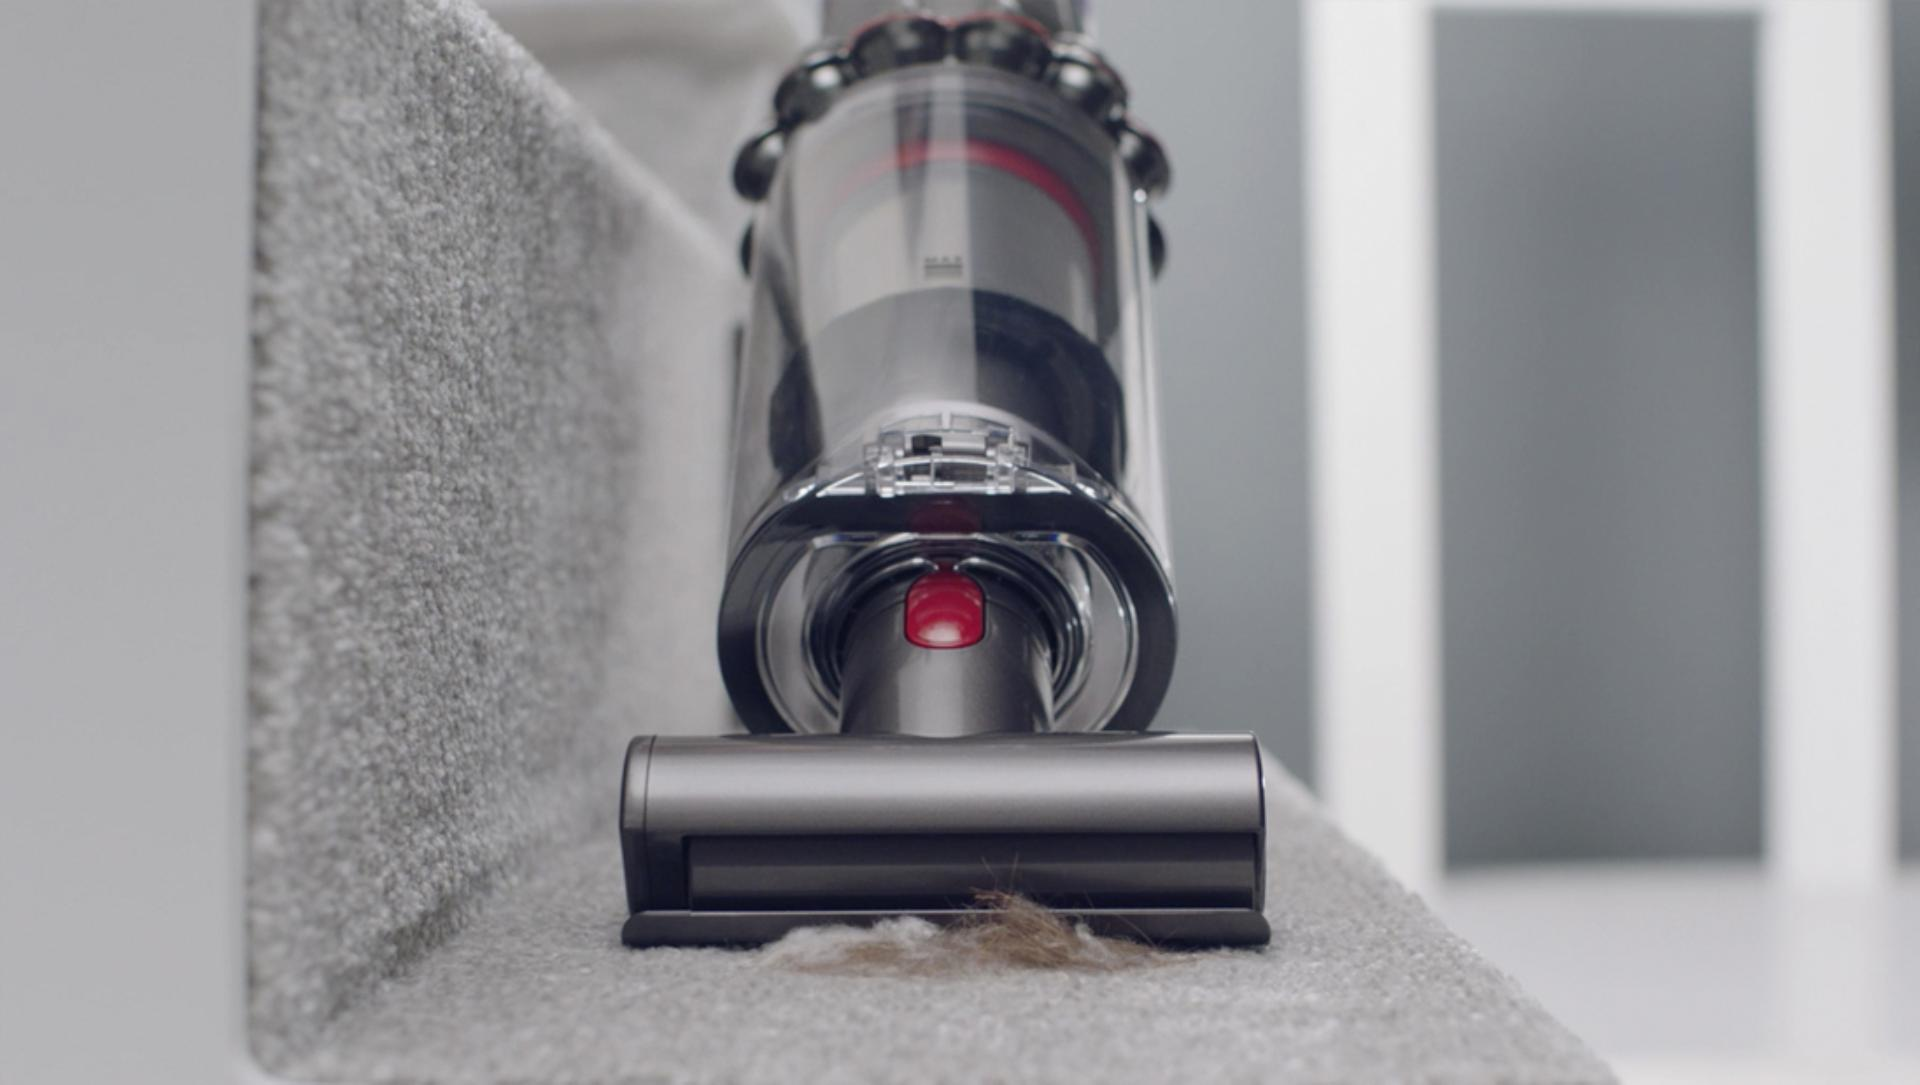 Mini motorised tool cleaning carpet on stairs